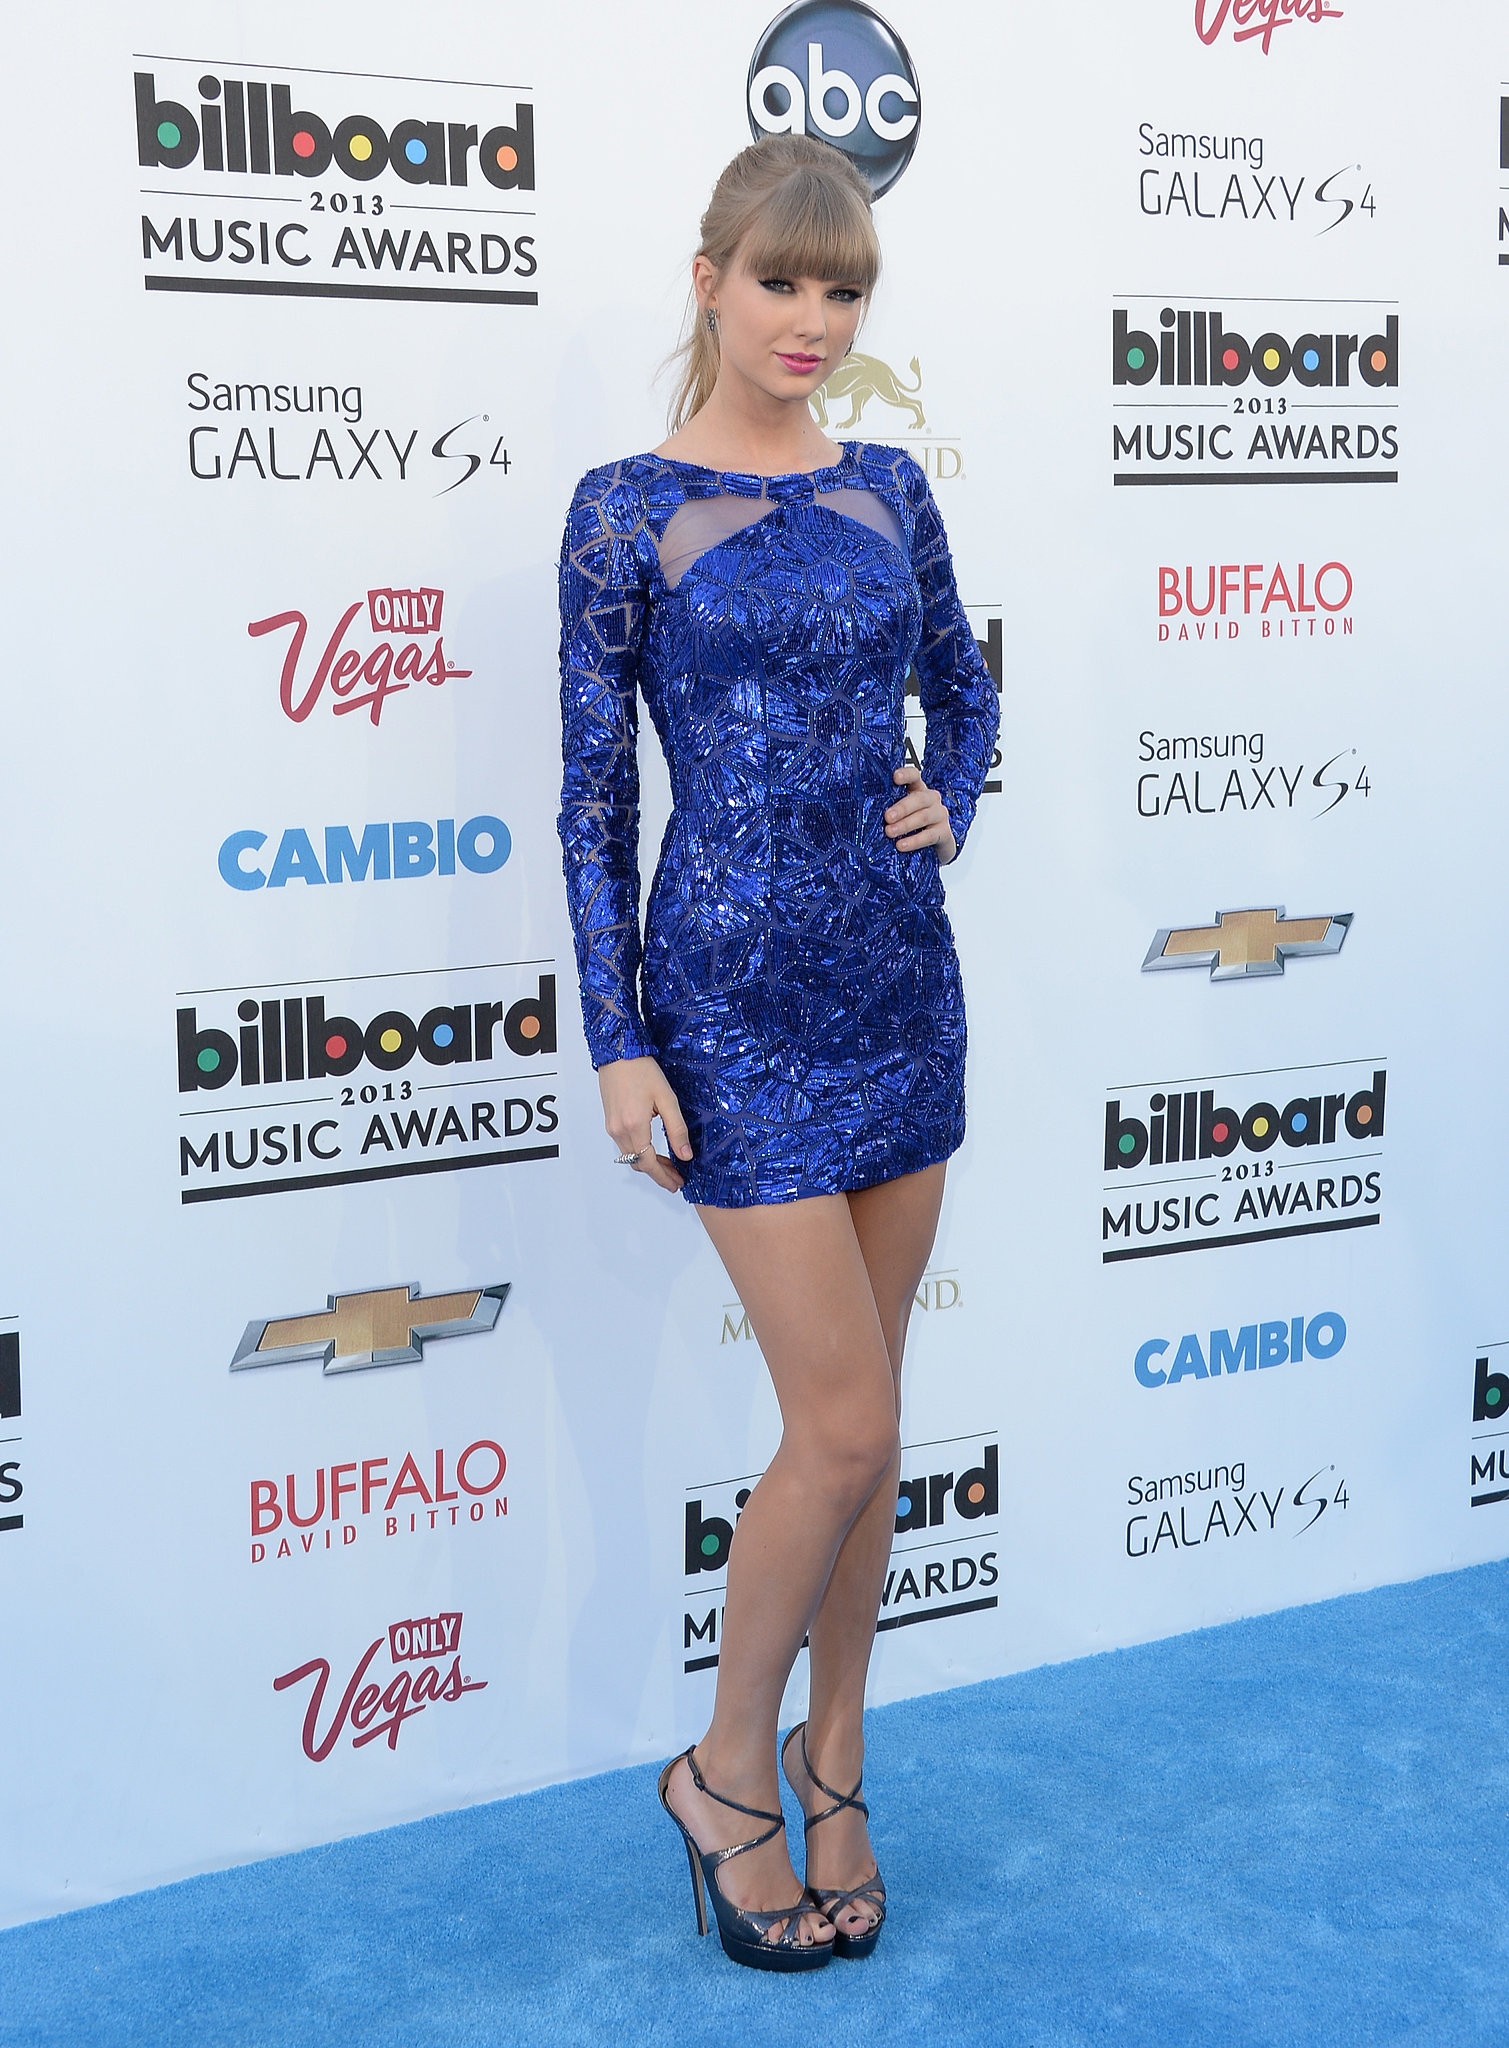 Taylor Swift showed off her legs in a vibrant blue Zuhair Murad minidress from the Pre-Fall '13 collection. She matched the sapphire hue with Ofira earrings and ring.